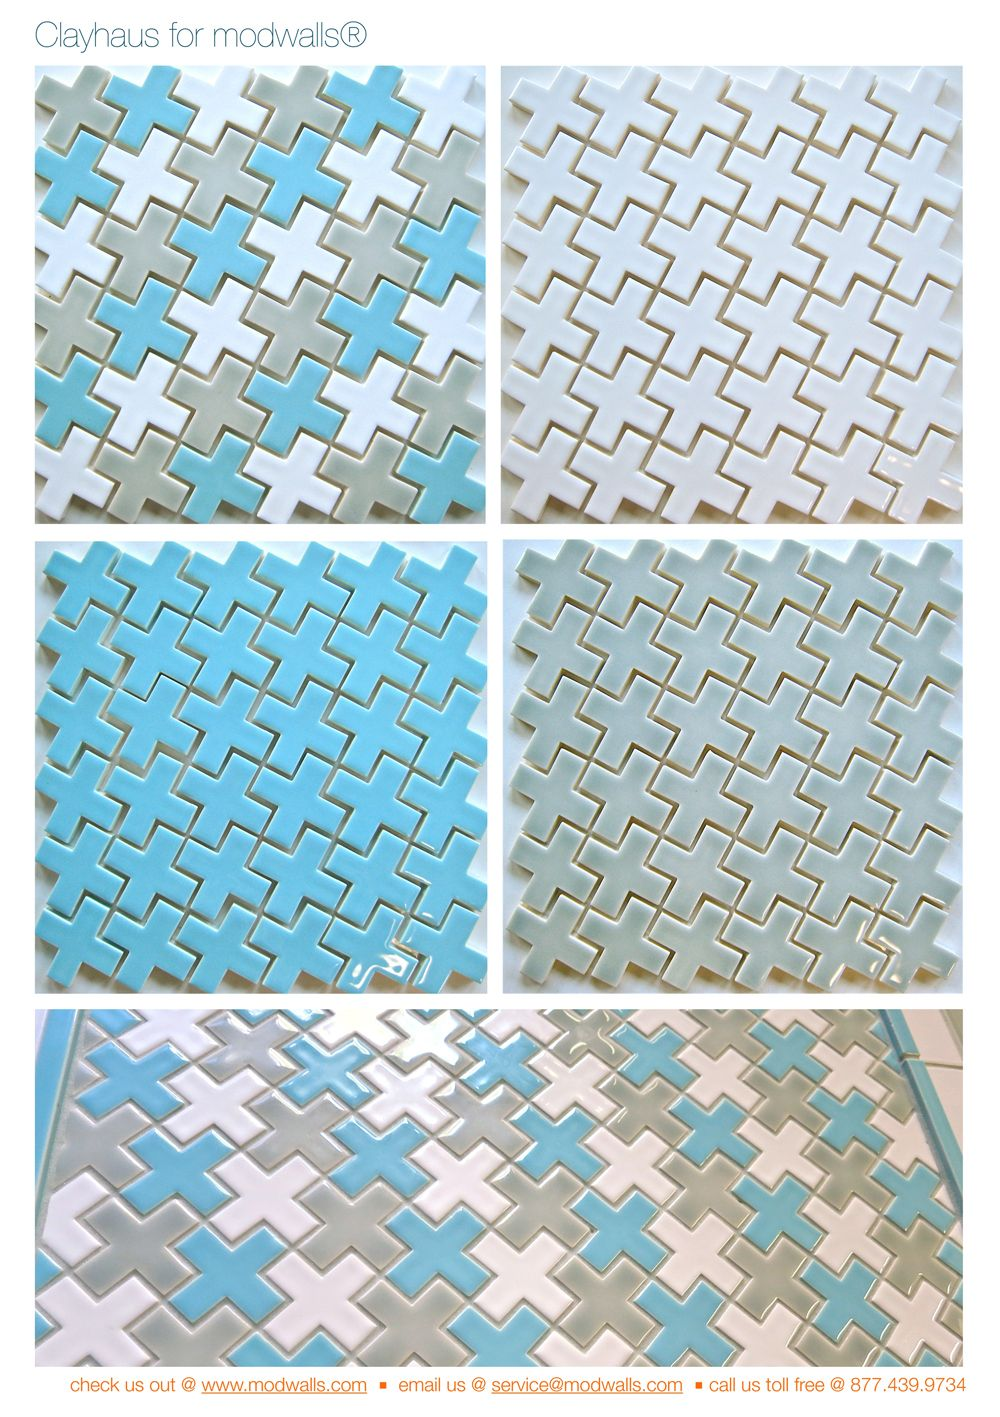 Blue bathroom floor tiles texture pin by proyecto cerámico on revestimientos  pinterest  d tiles